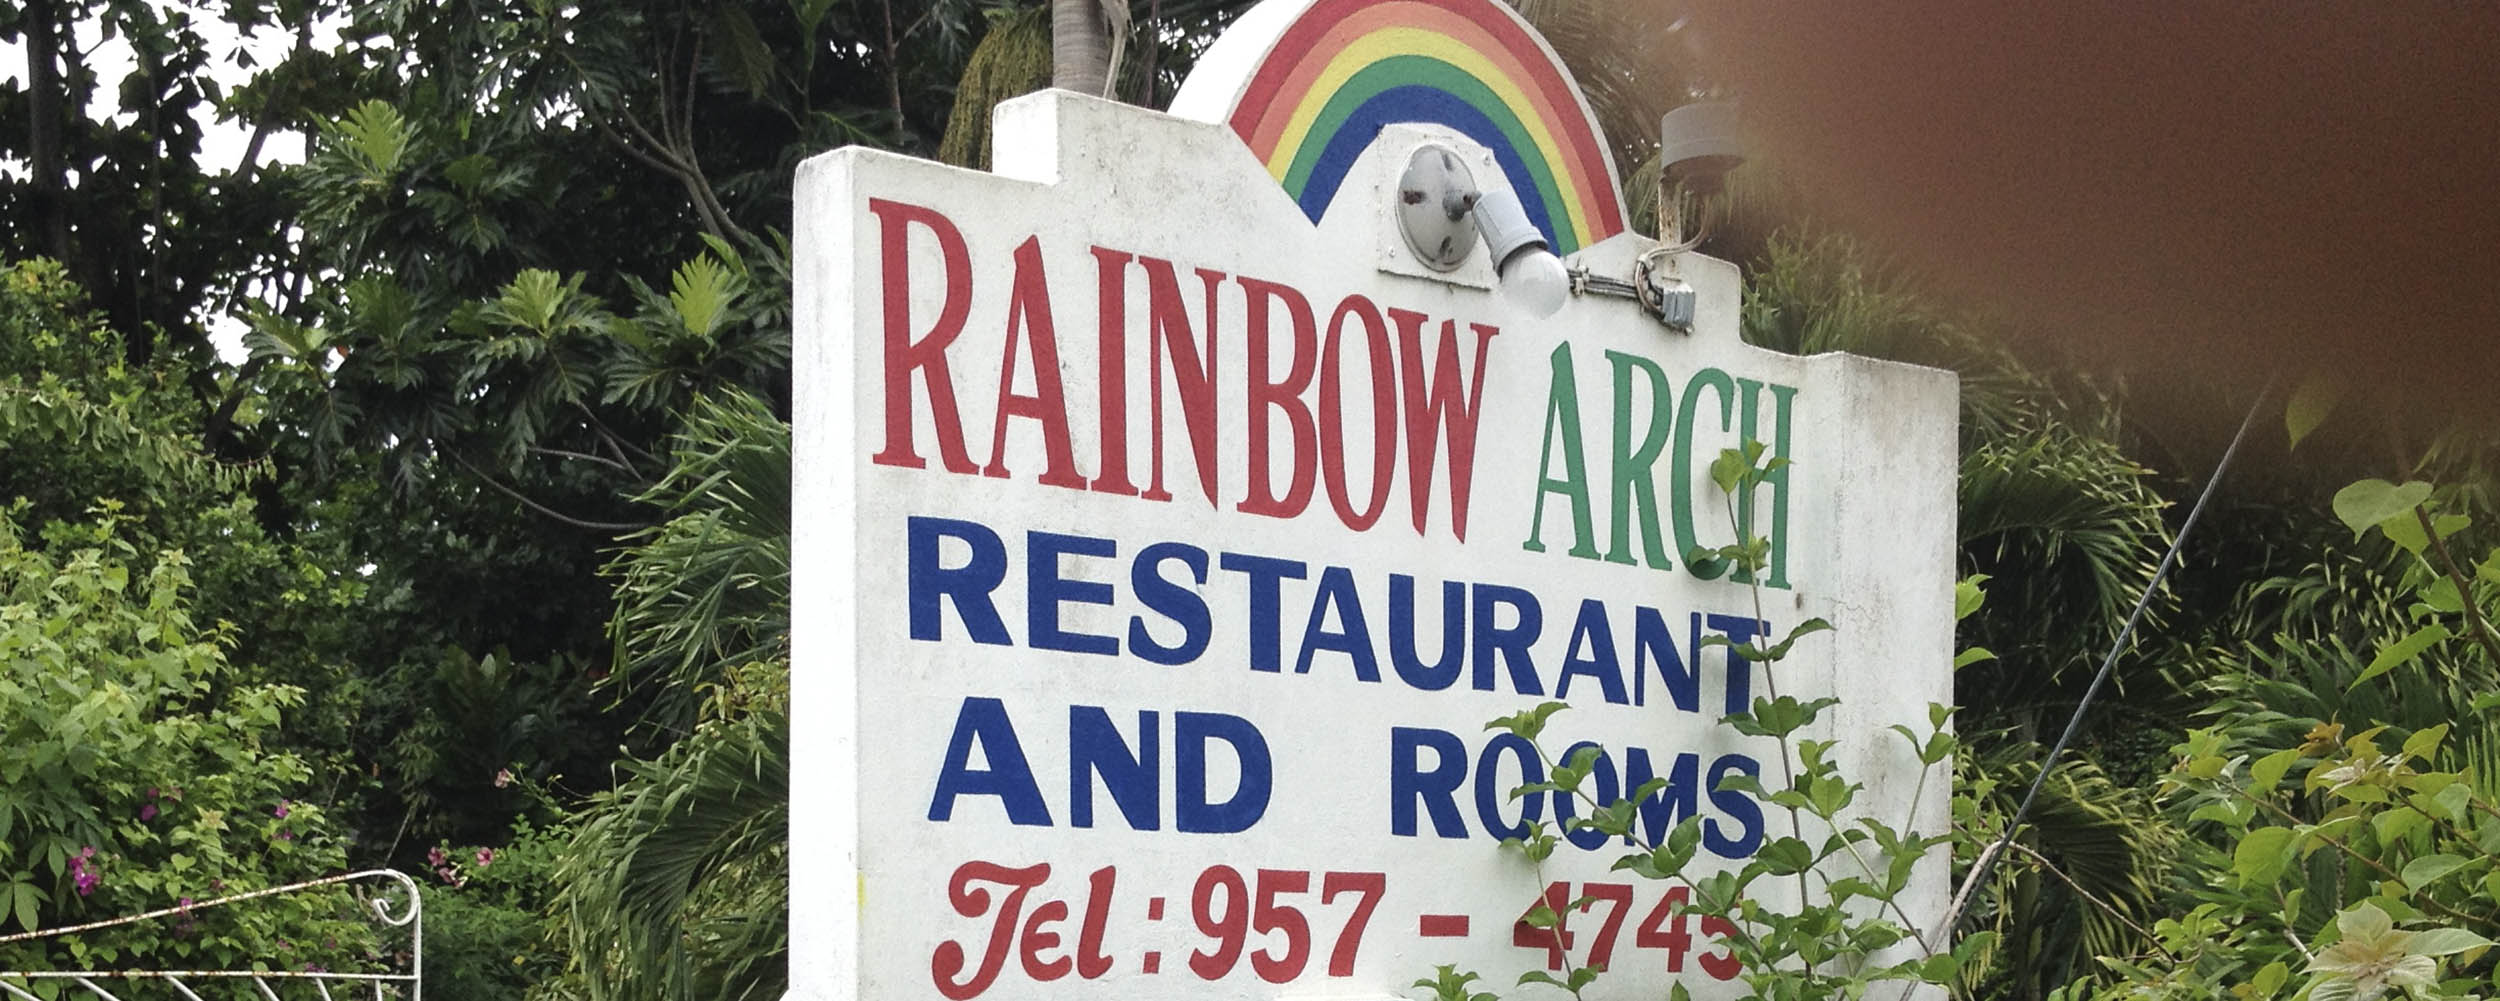 Rainbow Arch Restaurant and Rooms - Negril Jamaica